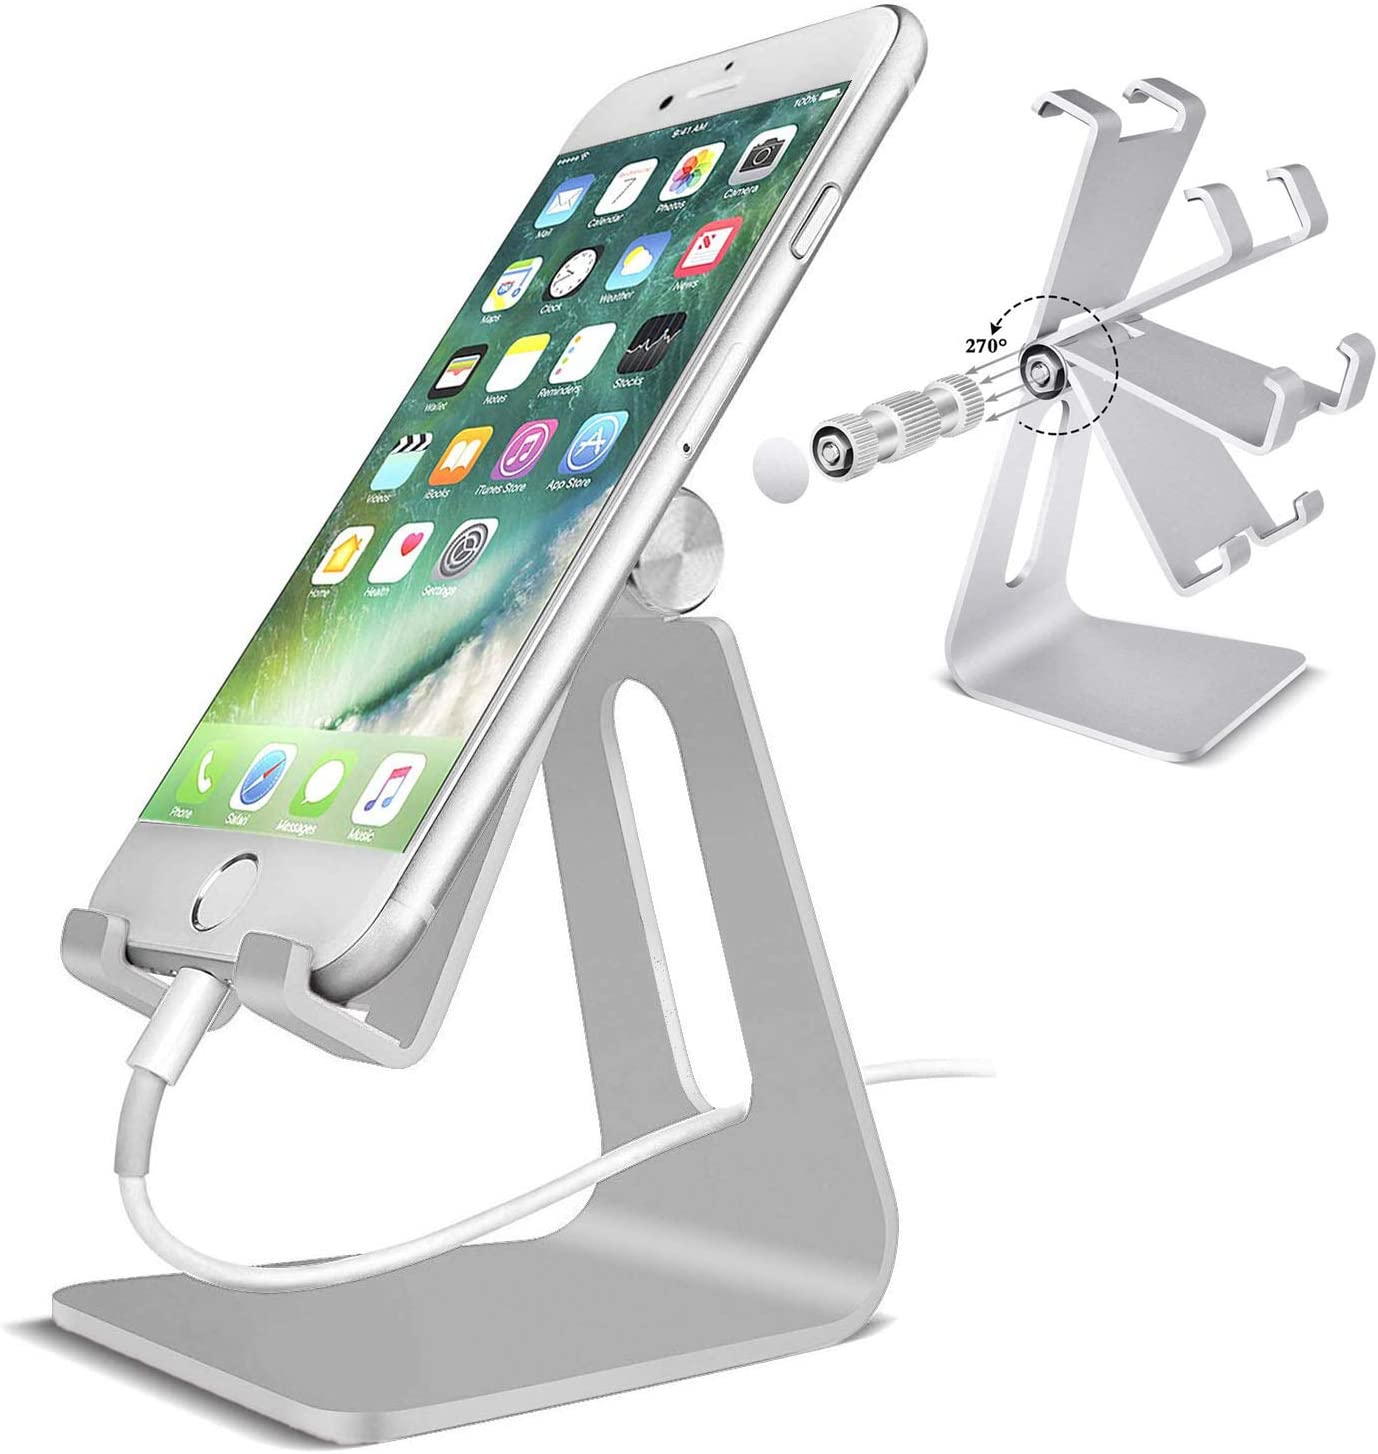 POKANIC Cell Phone Stand Dock Holder Cradle Mount Organizer Charger StationTable, Desktop Bed Office School Kitchen Travel Foldable Portable Adjustable, Multi-Angle Aluminum Non-Slip, Kids (Silver)